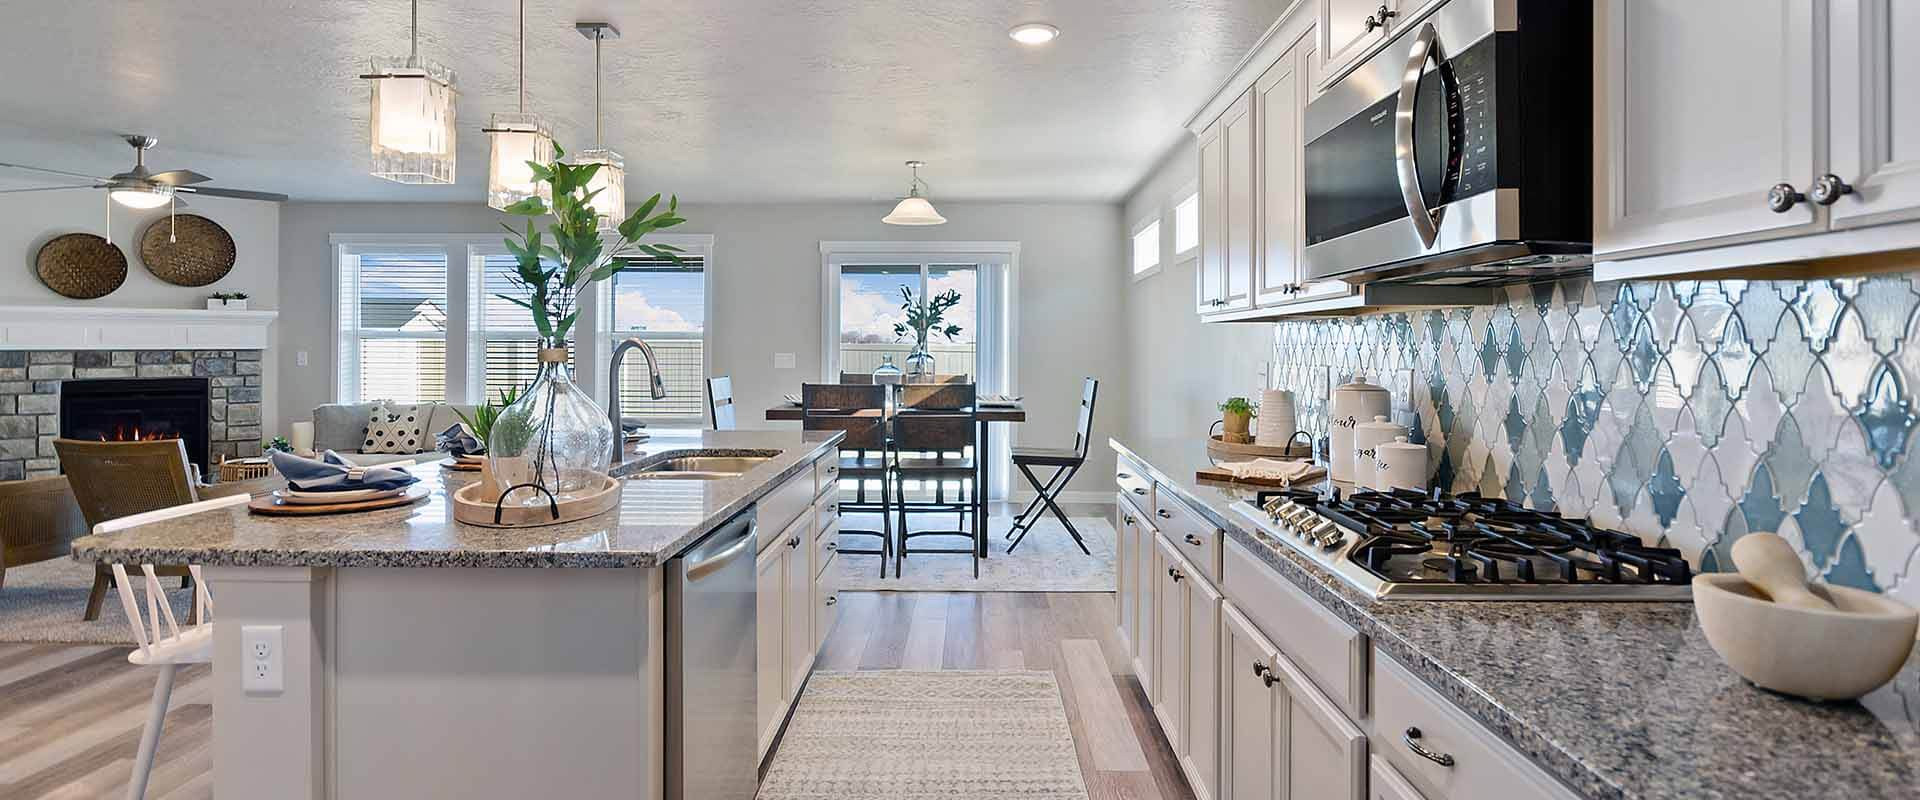 Charlesworth-New-Homes-Boise-Idaho-Spruce-Kitchen.jpg